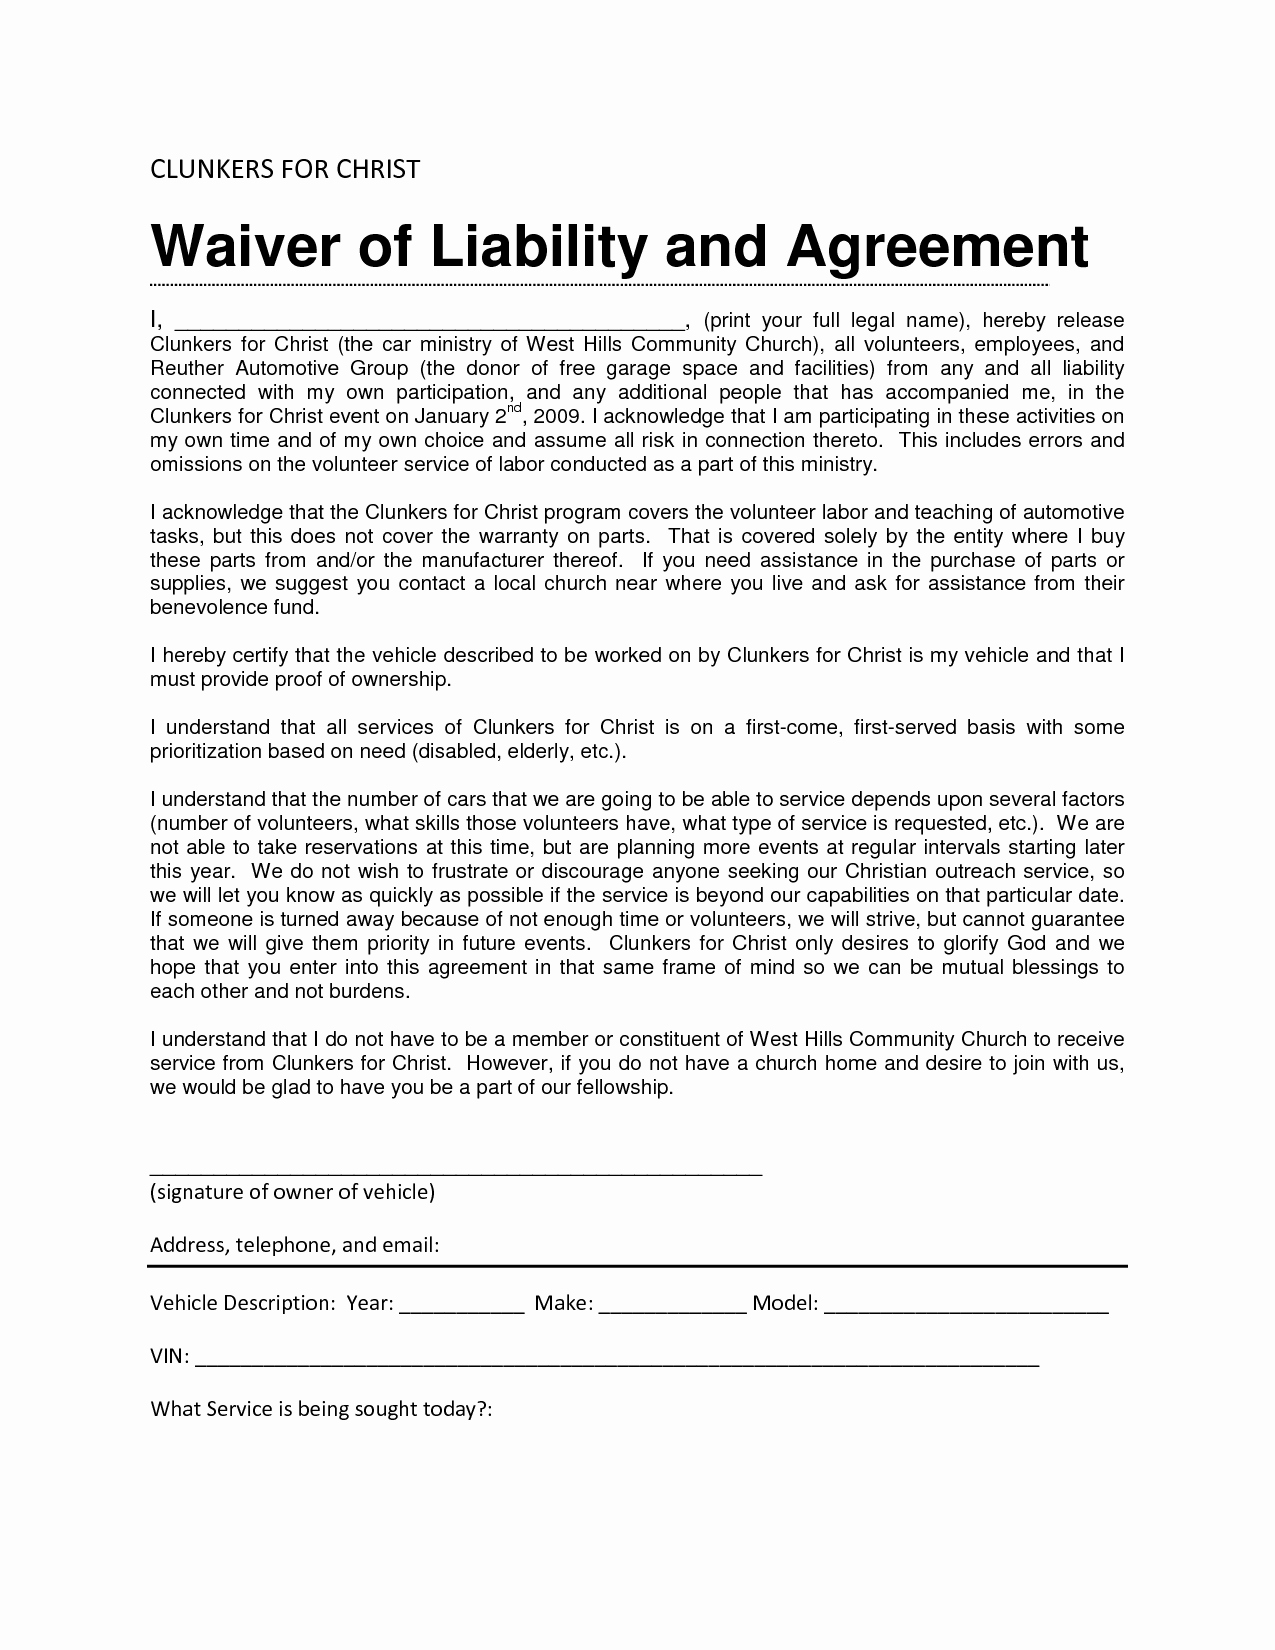 Liability Release form Template Unique Liability Release form Template